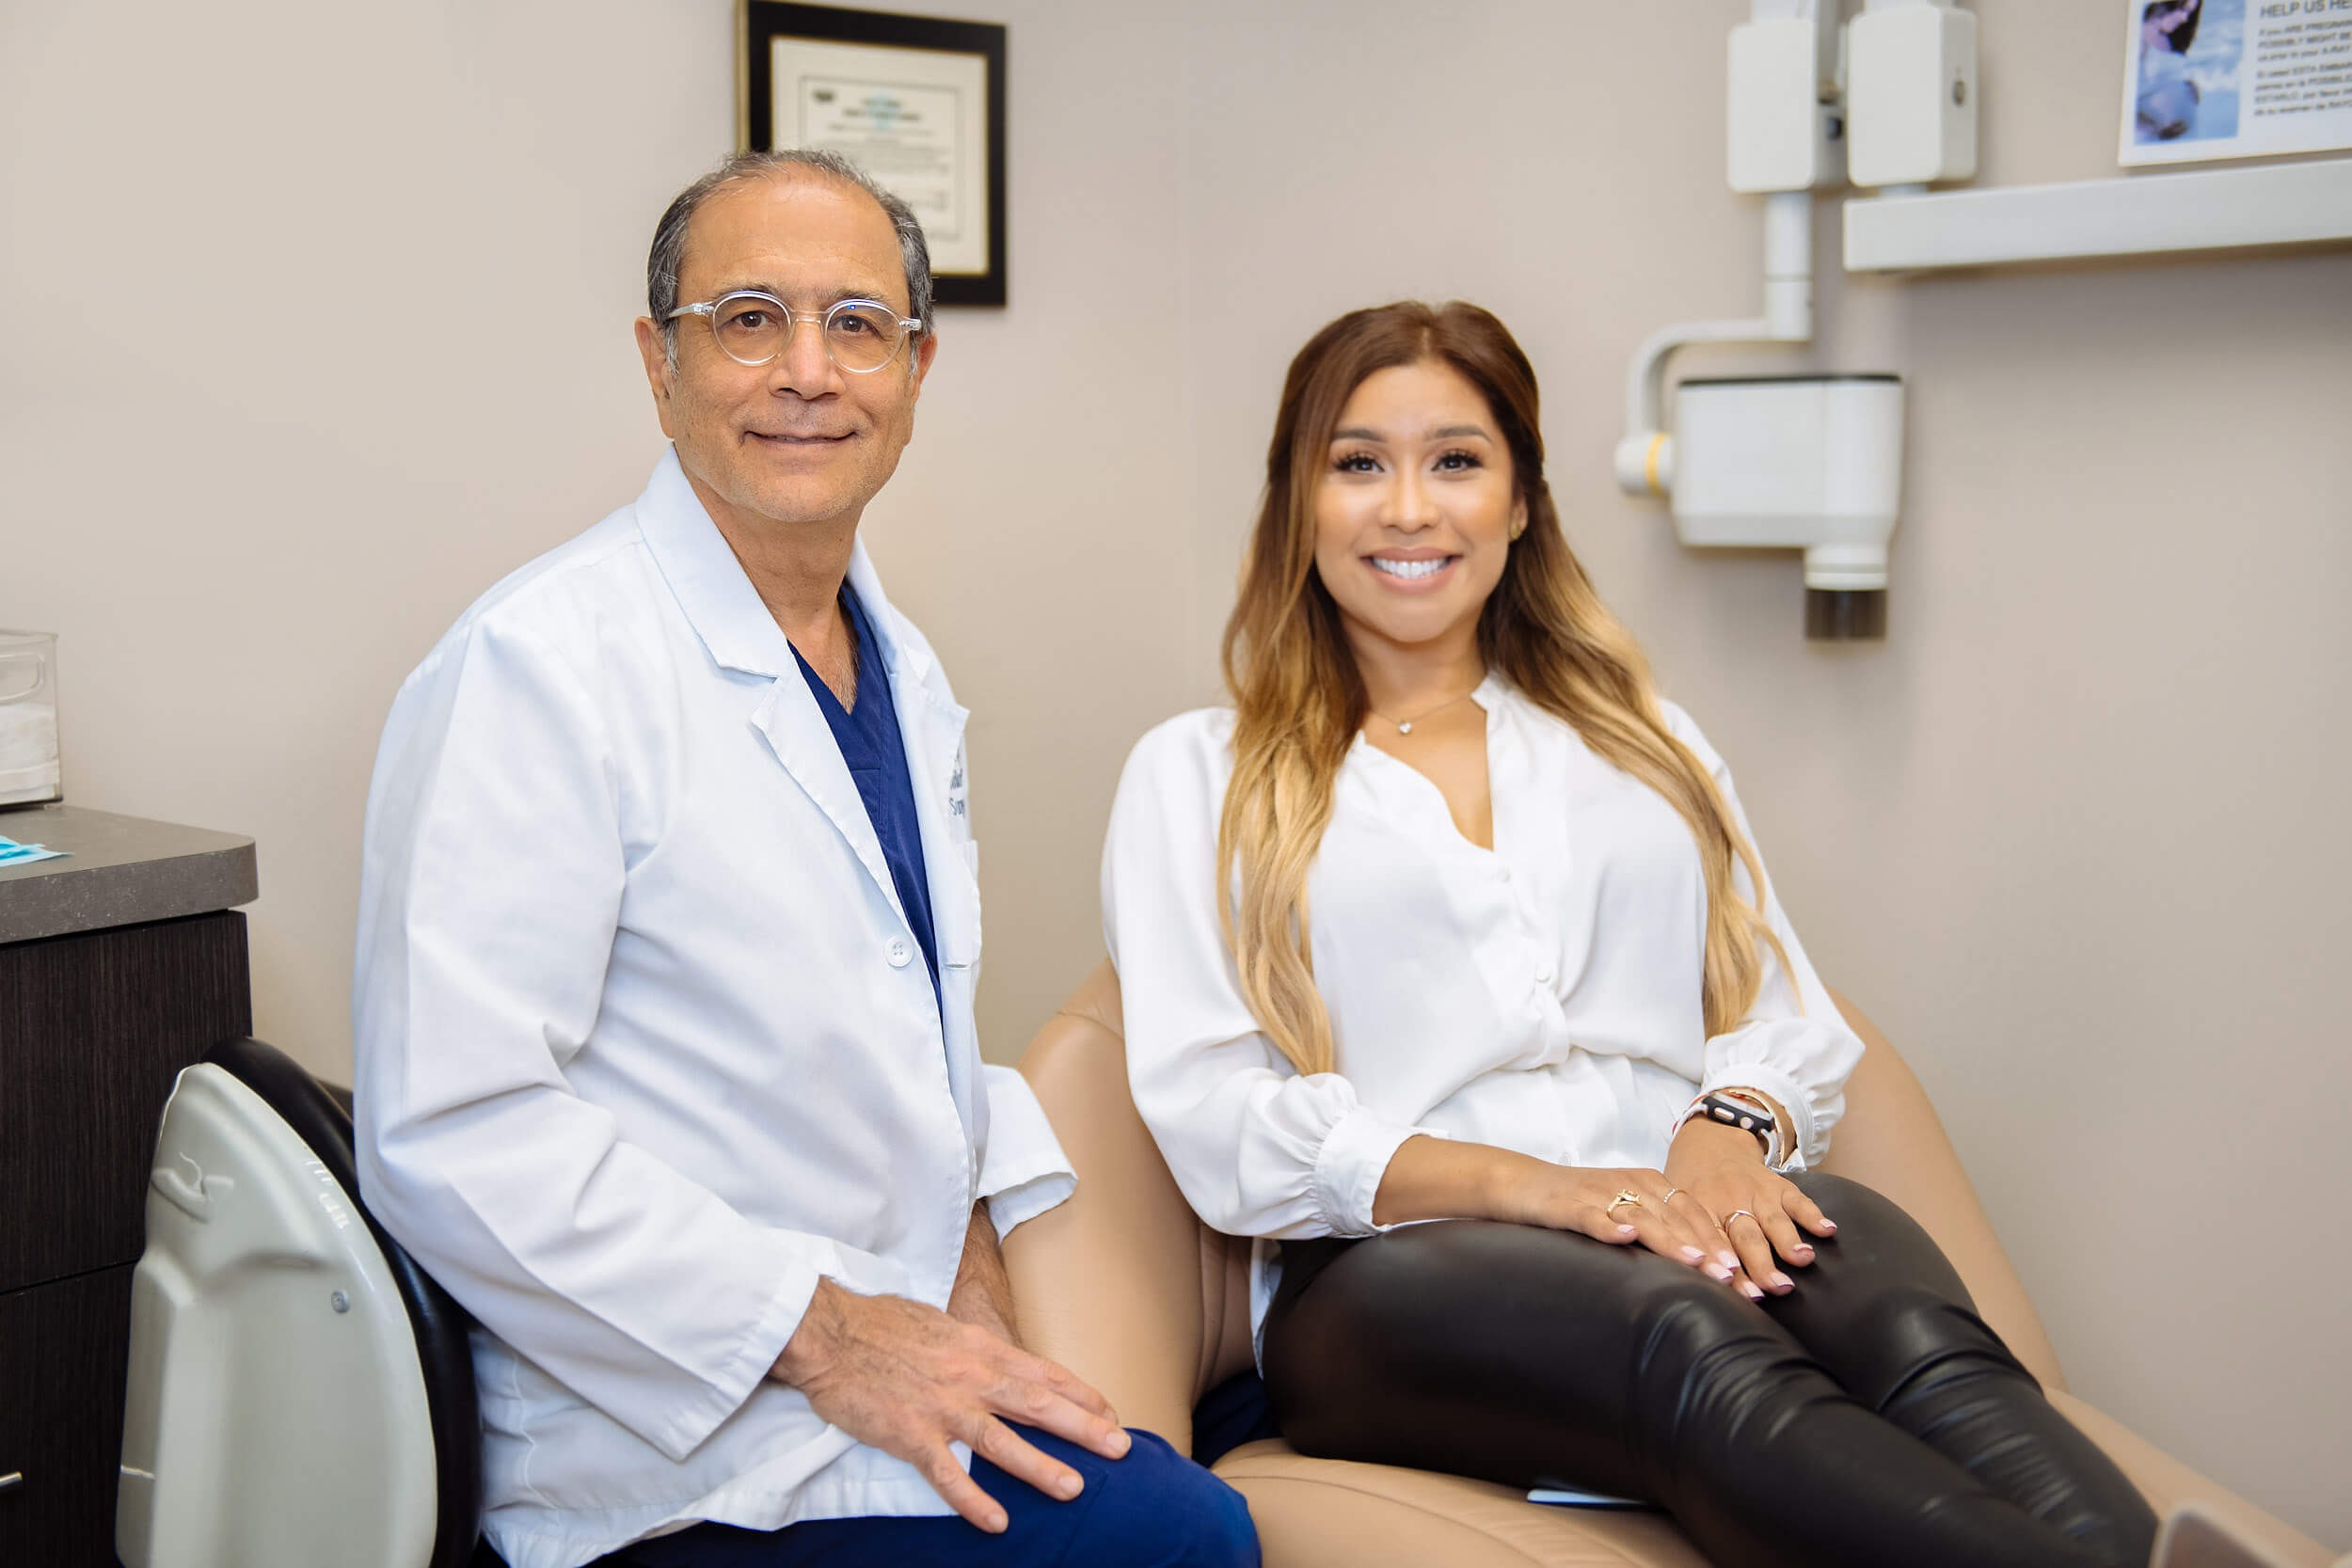 Dr. Shaun Daneshgar sitting with patient